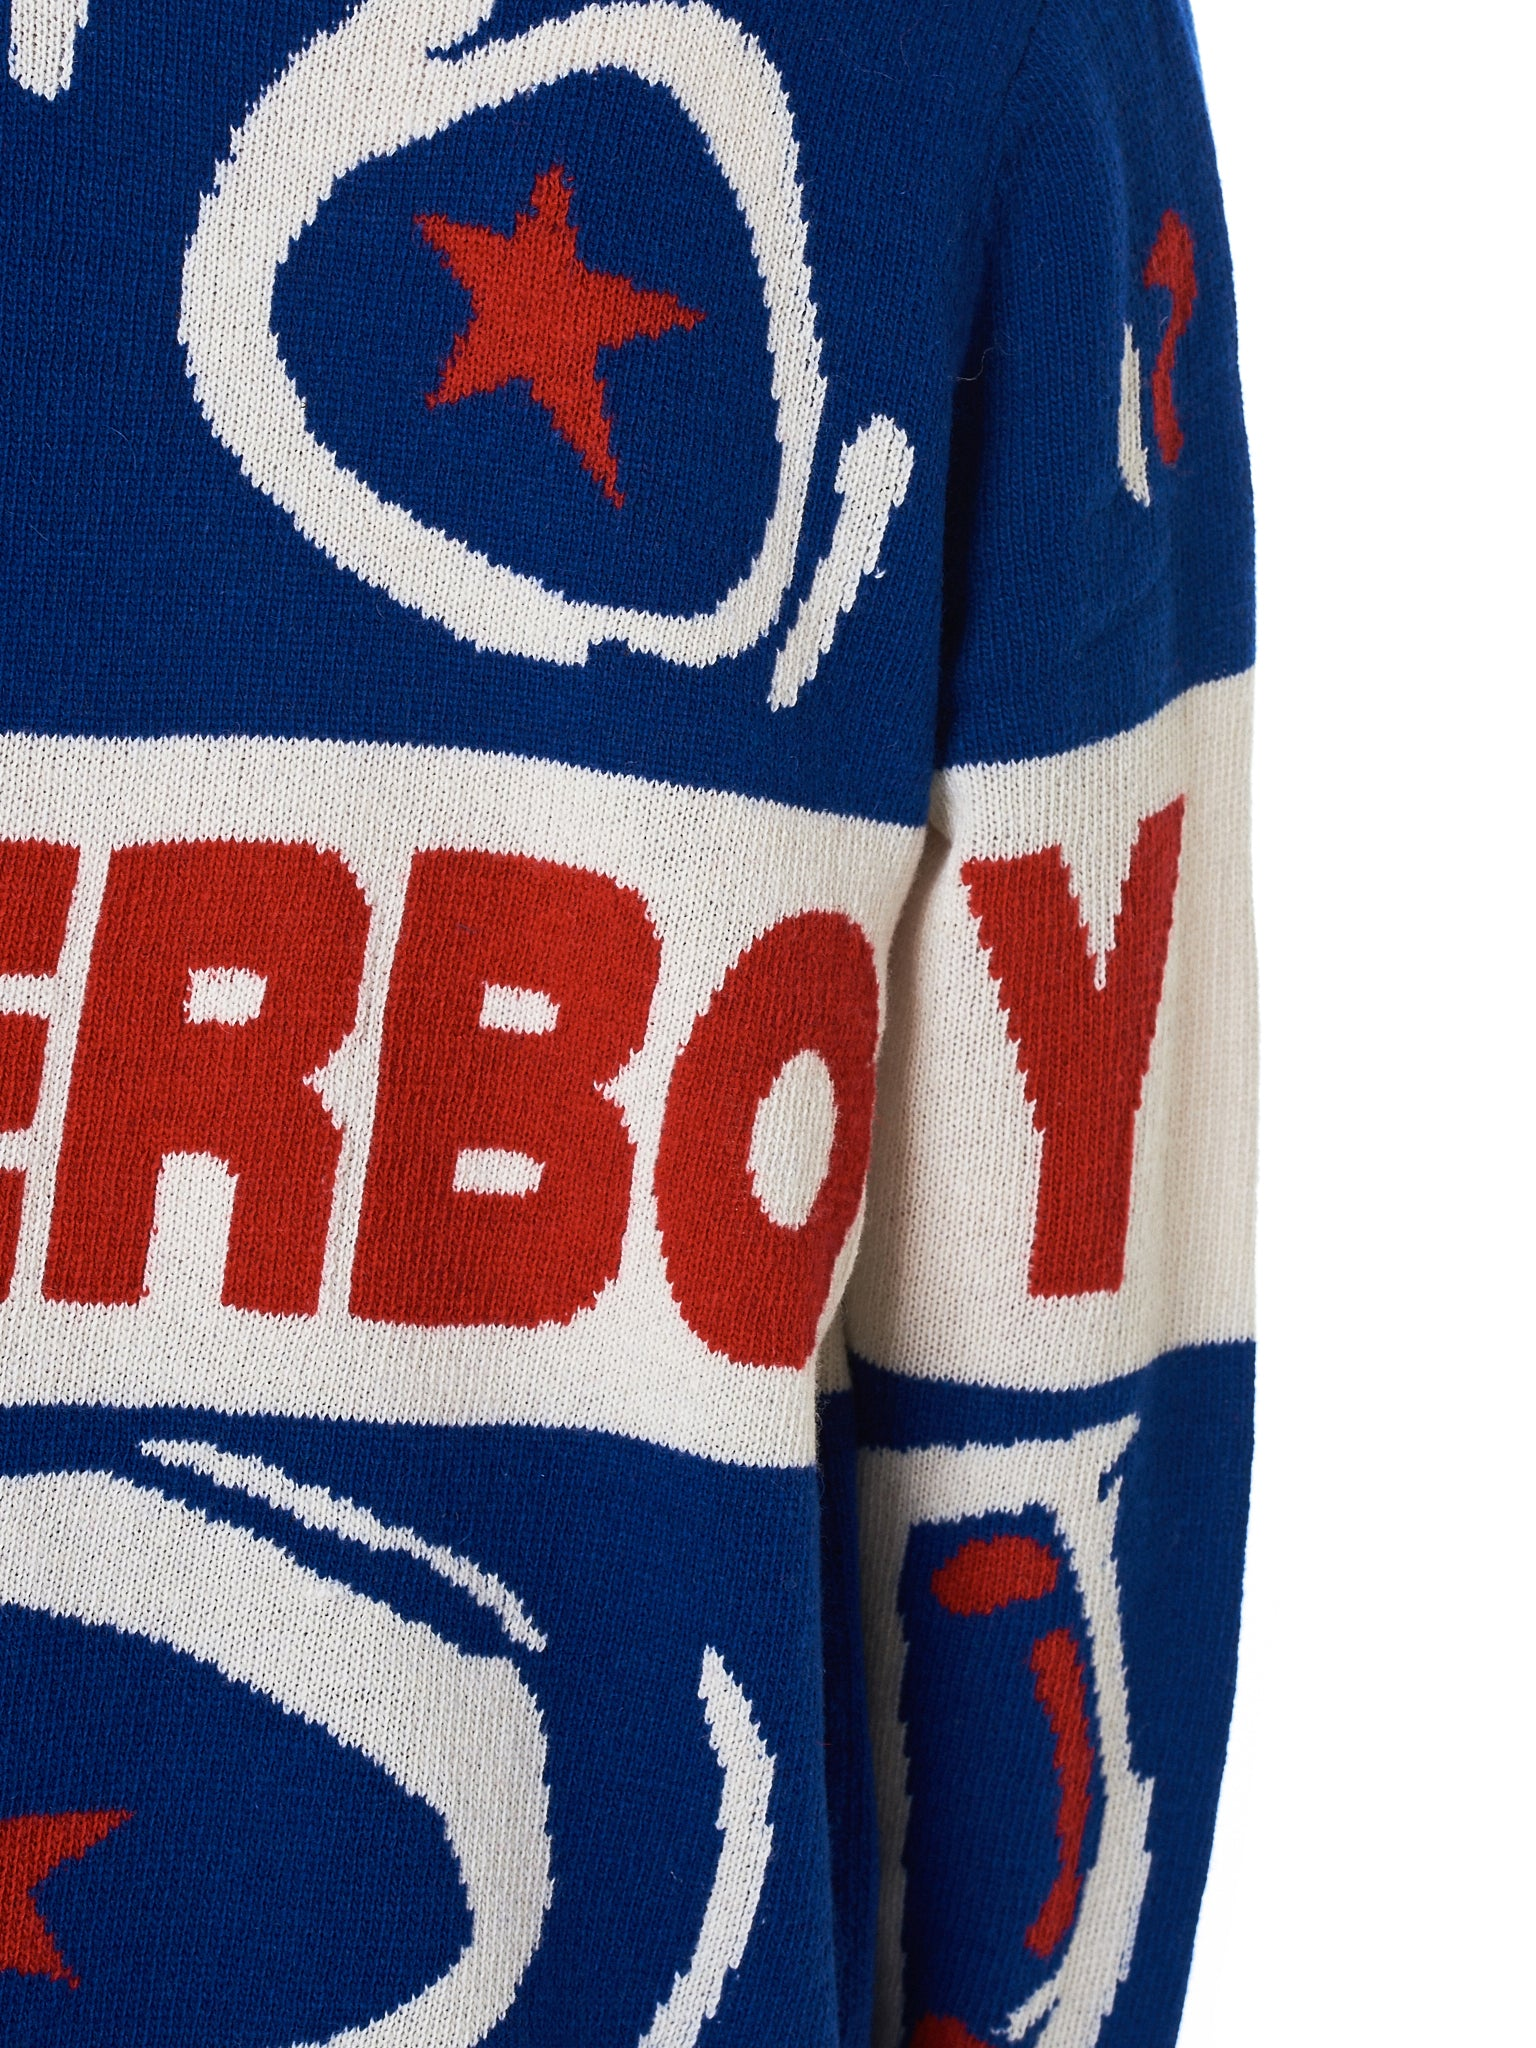 Charles Jeffrey Loverboy Sweater - Hlorenzo Detail 3